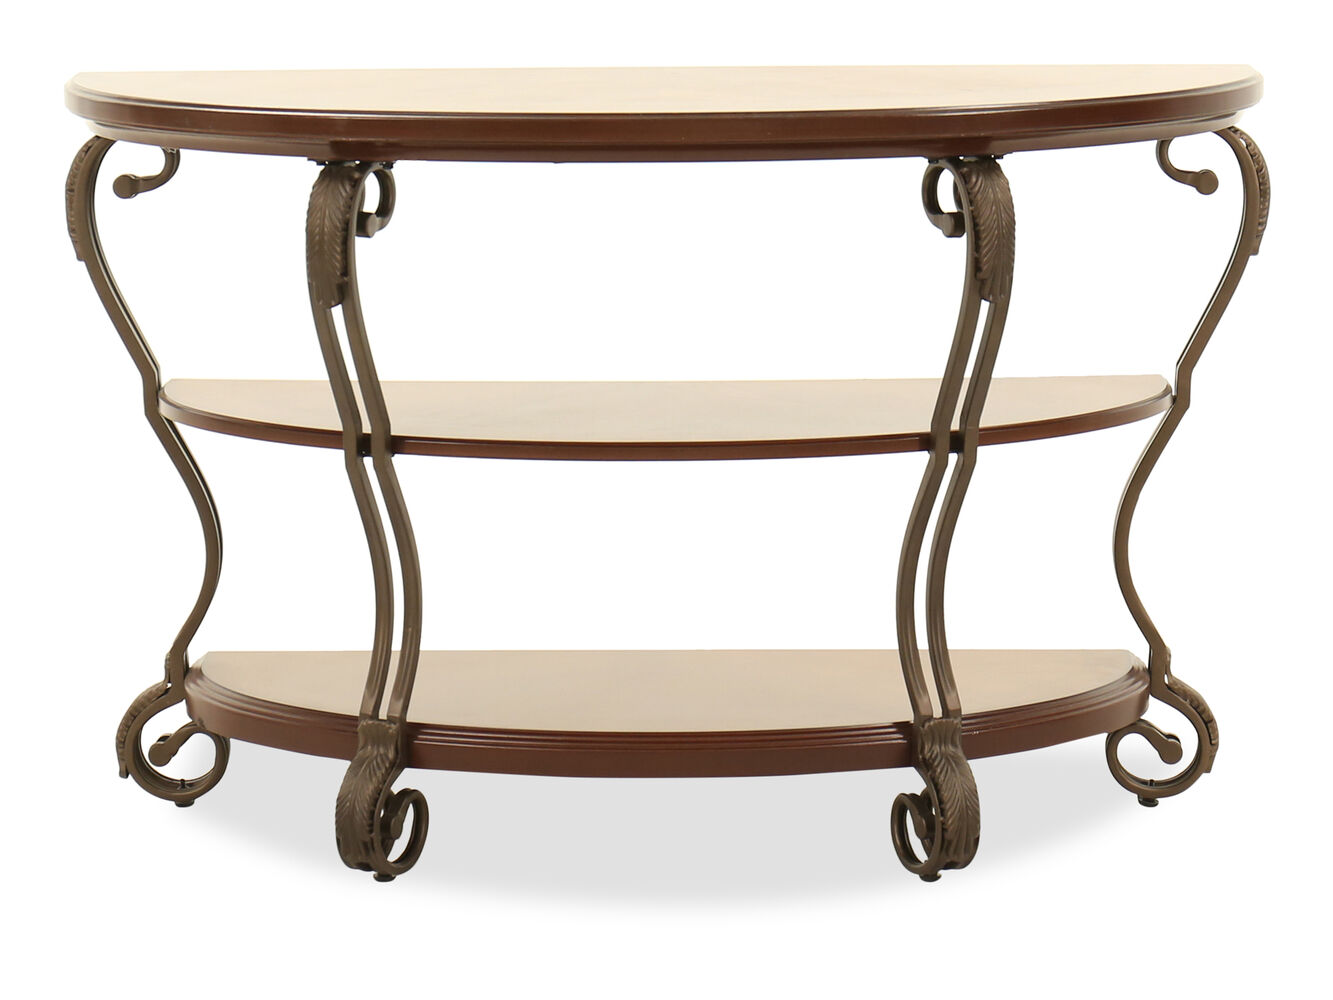 Scrolled legs traditional sofa table in burnished bronze for Traditional sofas with legs